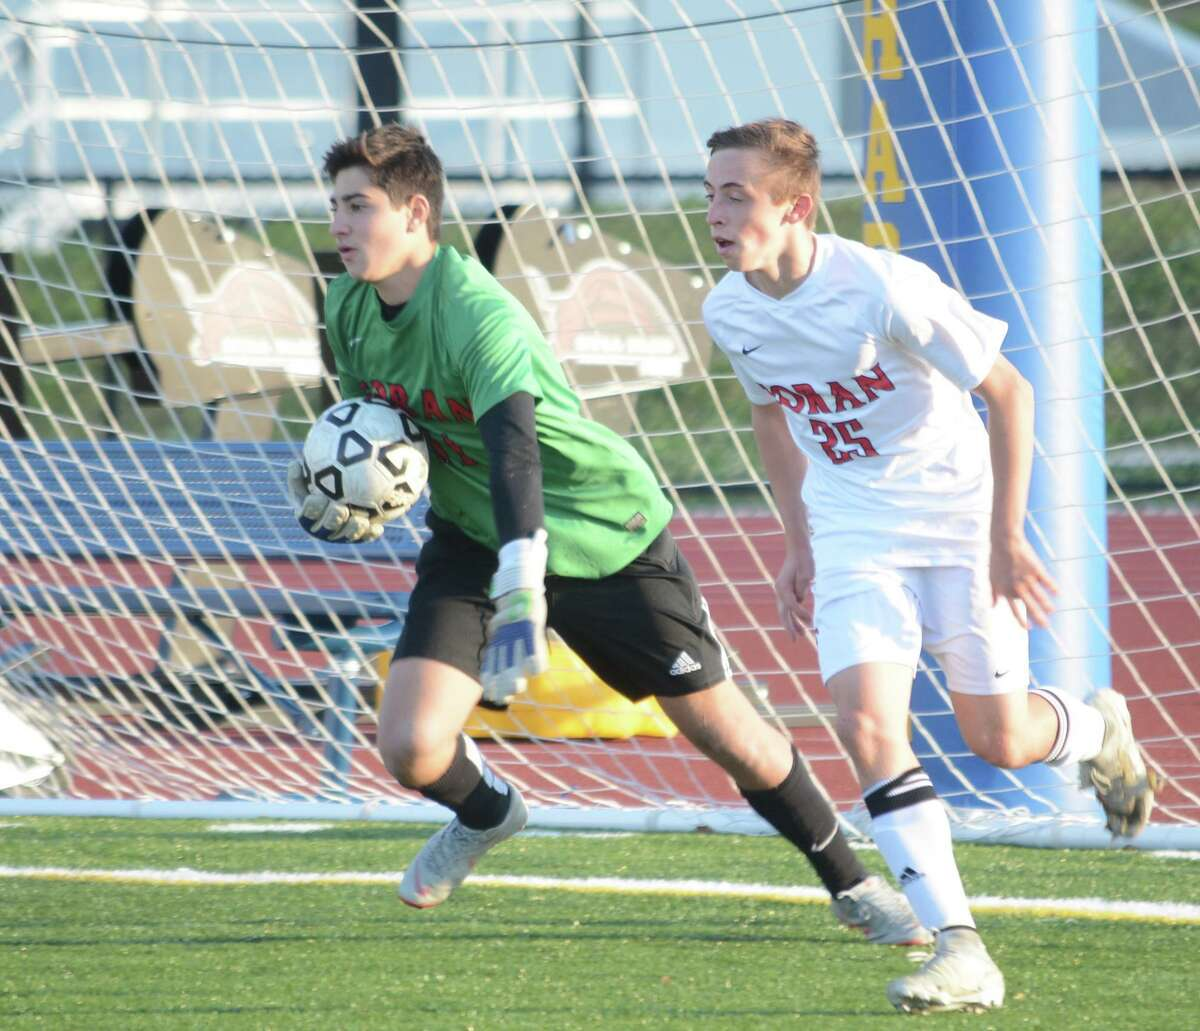 Luca Marinelli, flanked by Thomas Kummer, will be in goal for Foran High when it opens its season.